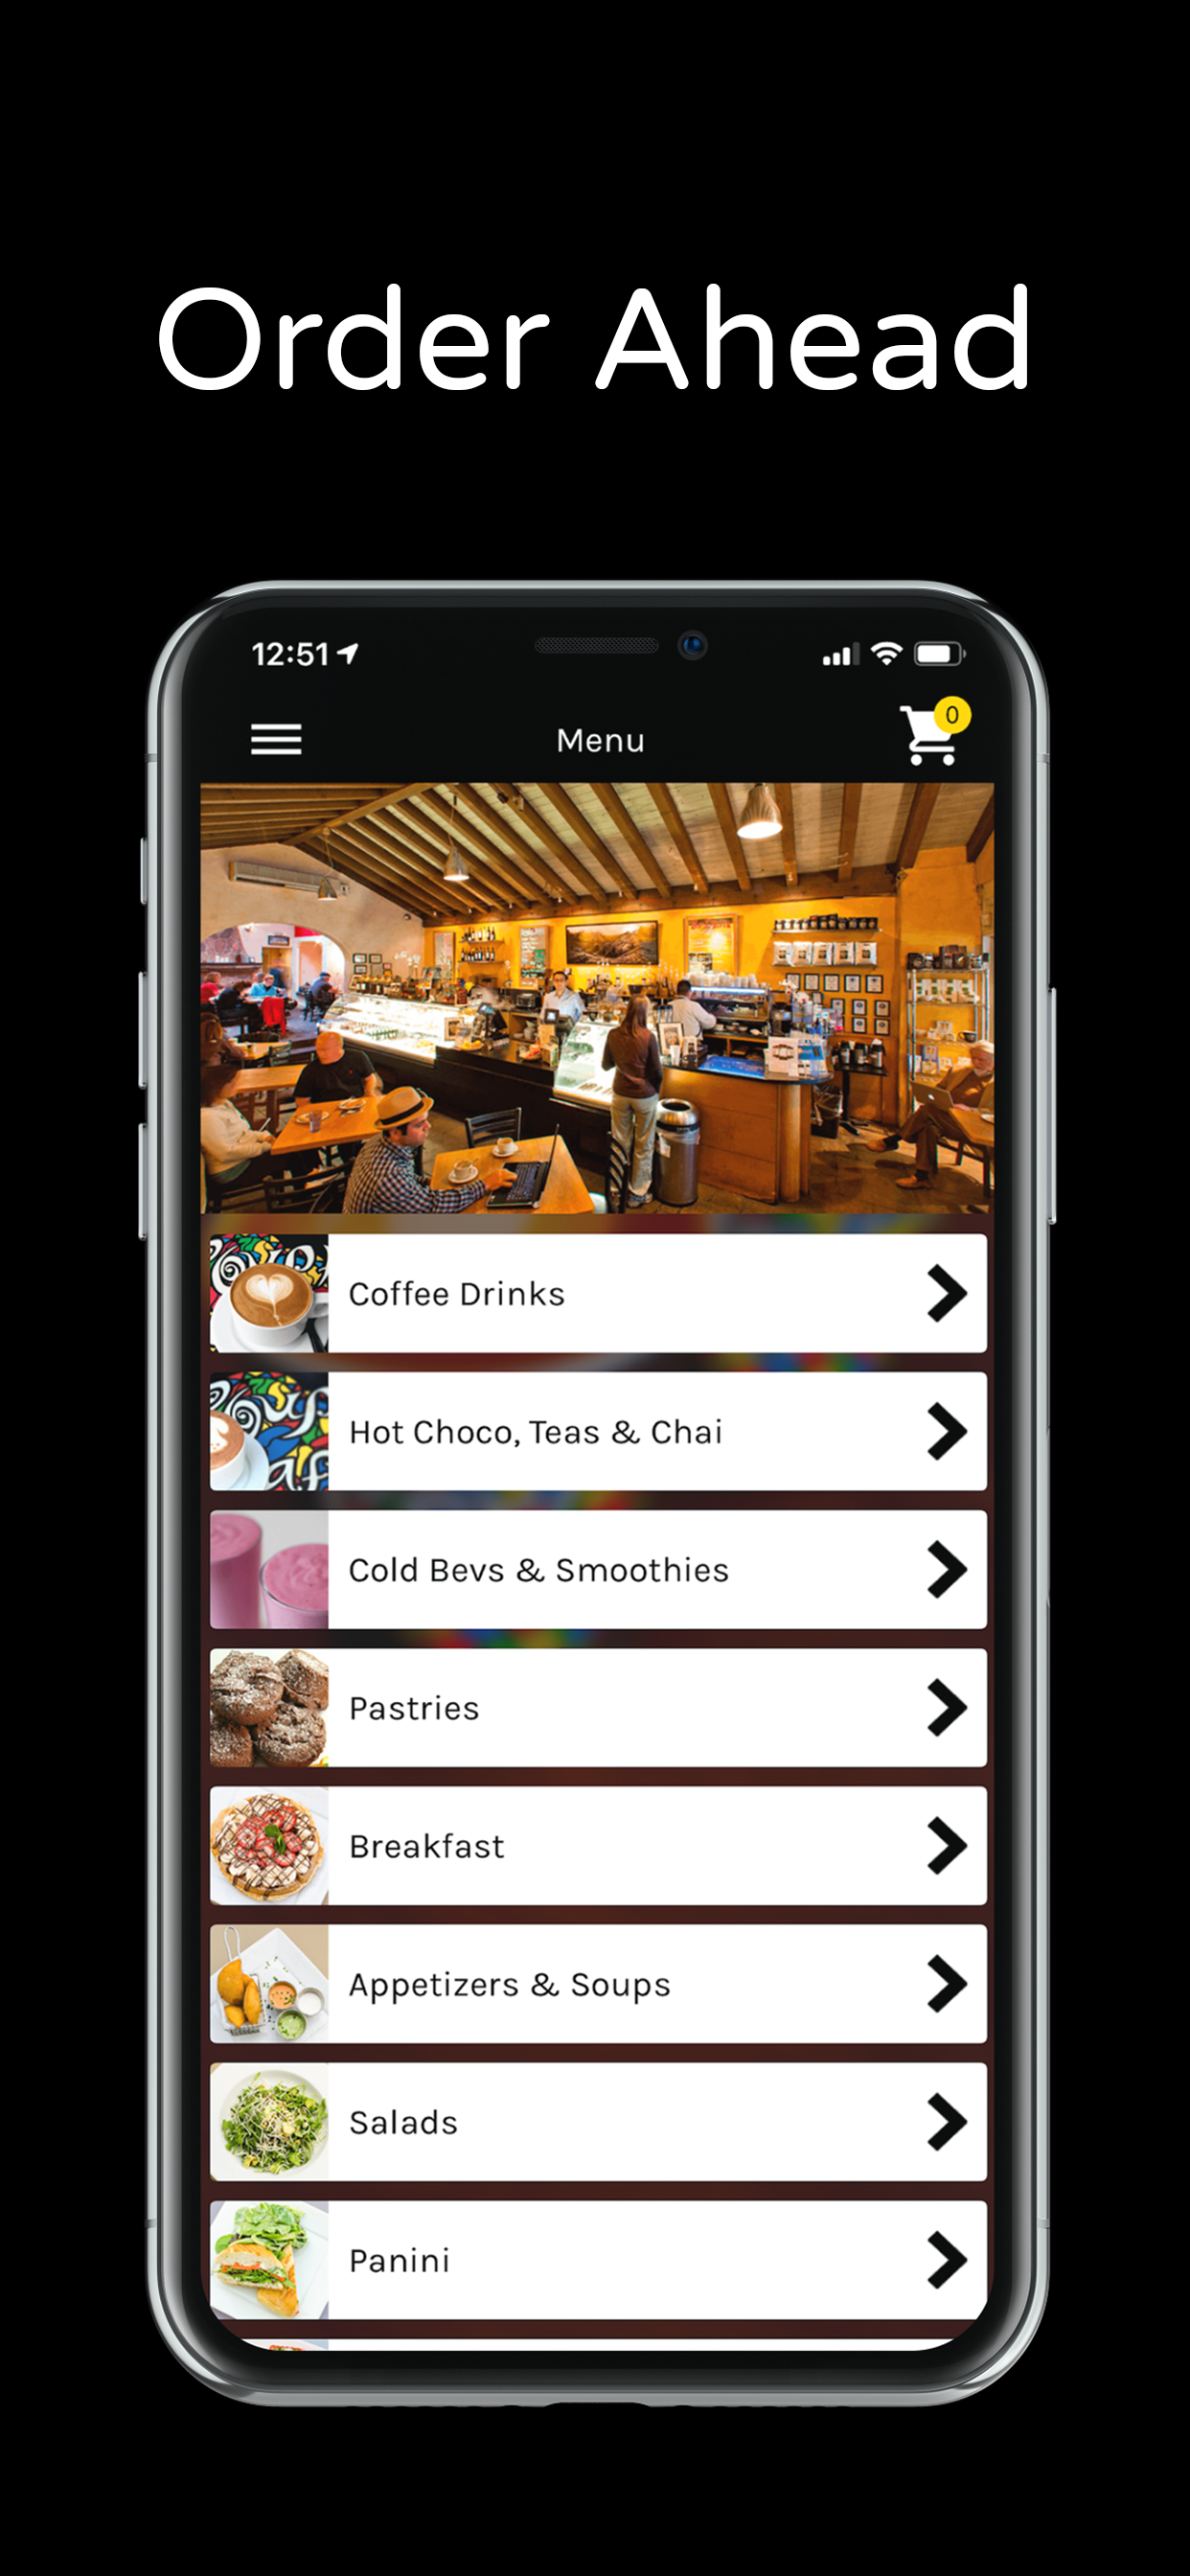 Coupa Cafe gets mobile ordering and delivery with NCR and